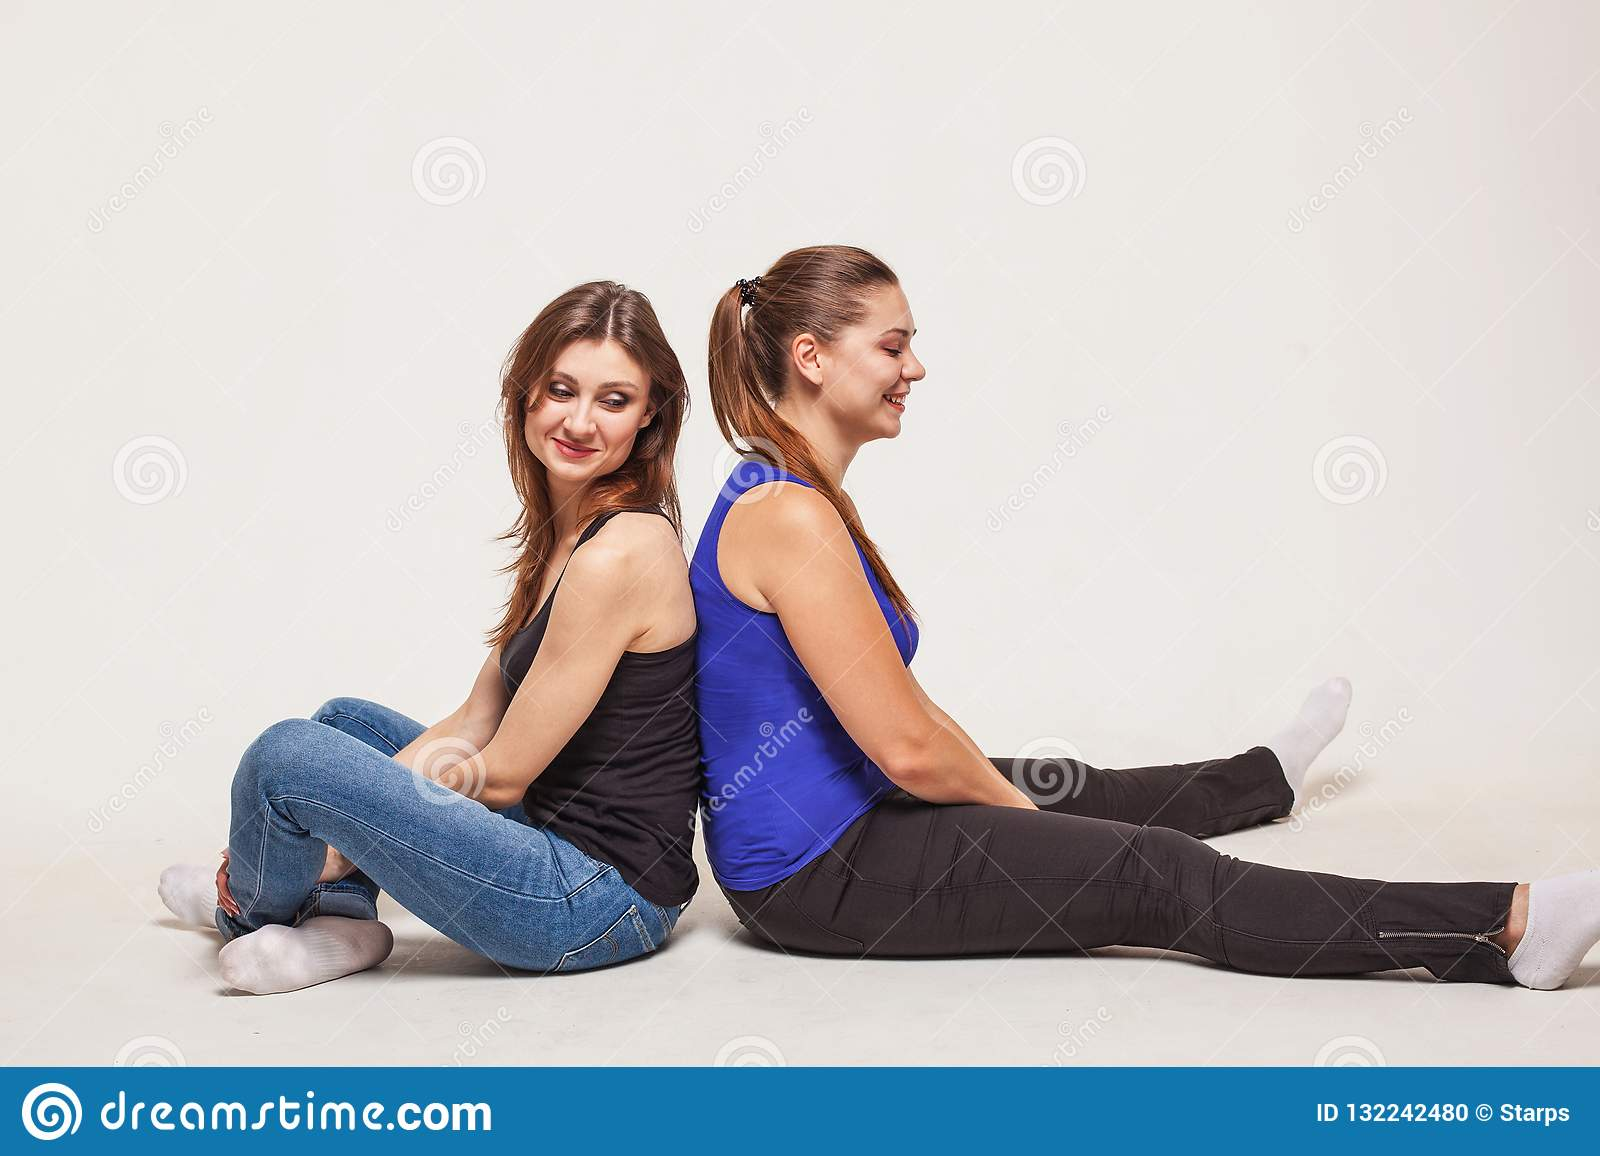 Two young women sit back to back